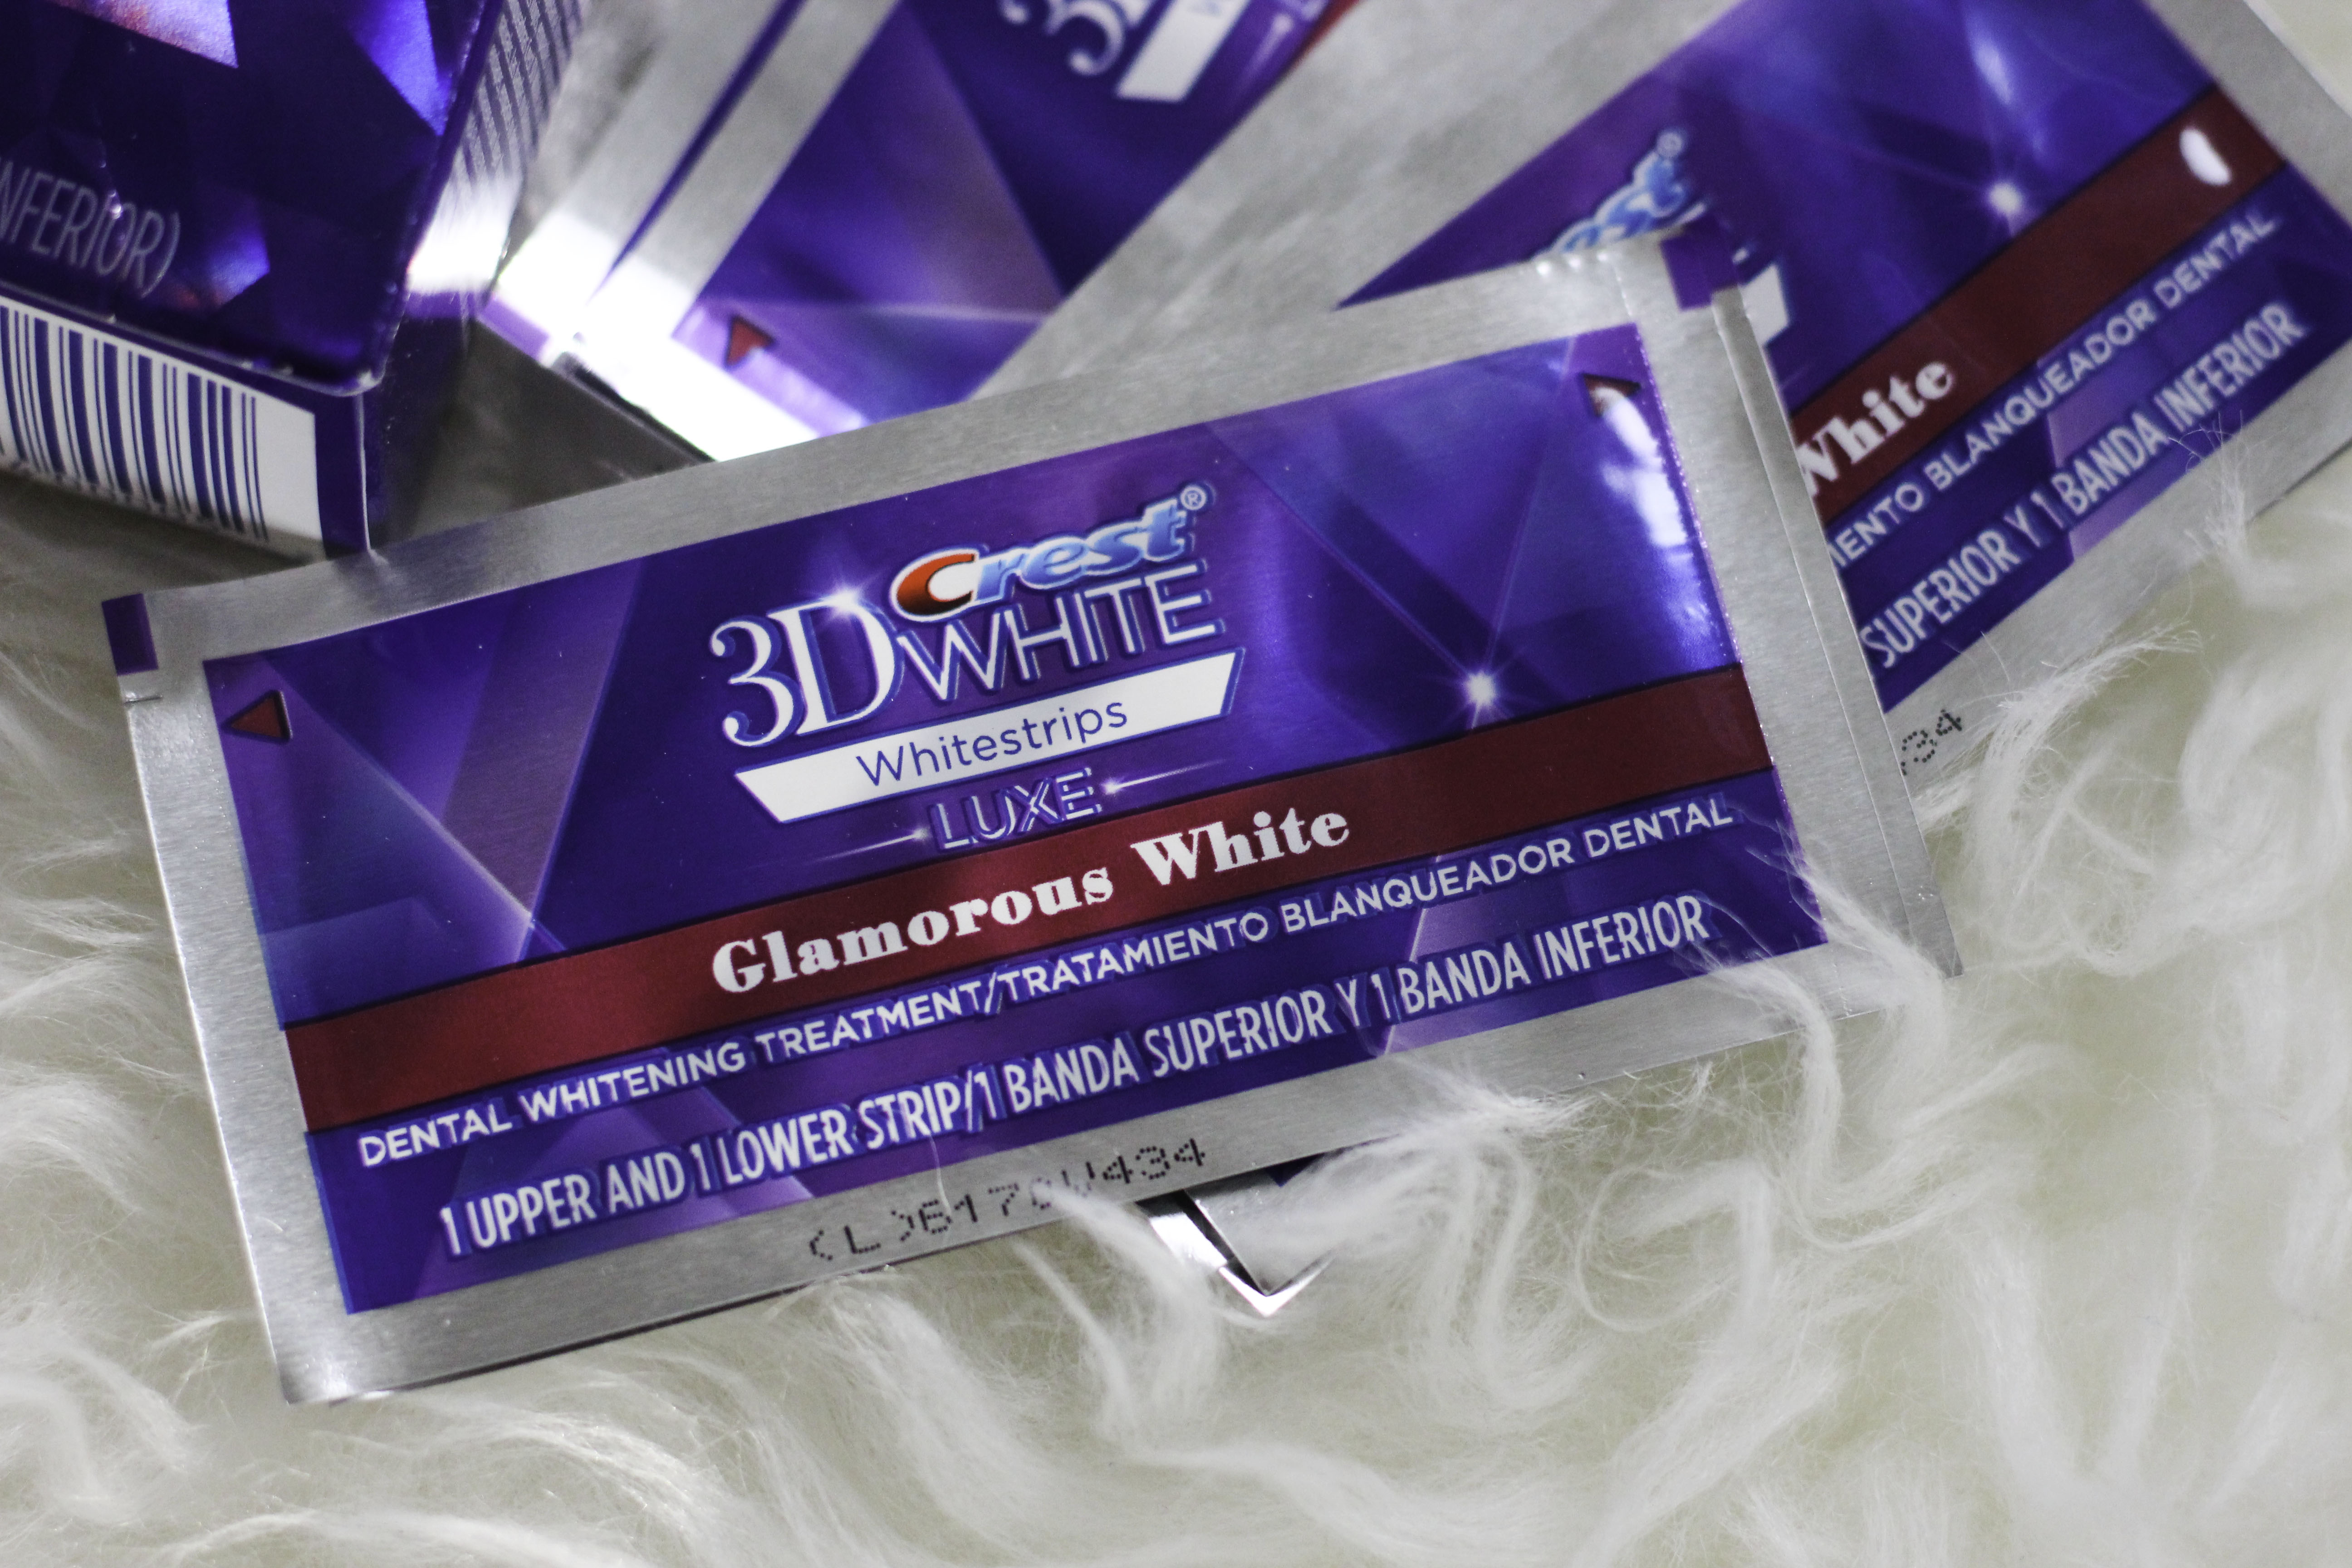 Product Review 3d Crest Glamorous Whitestrips